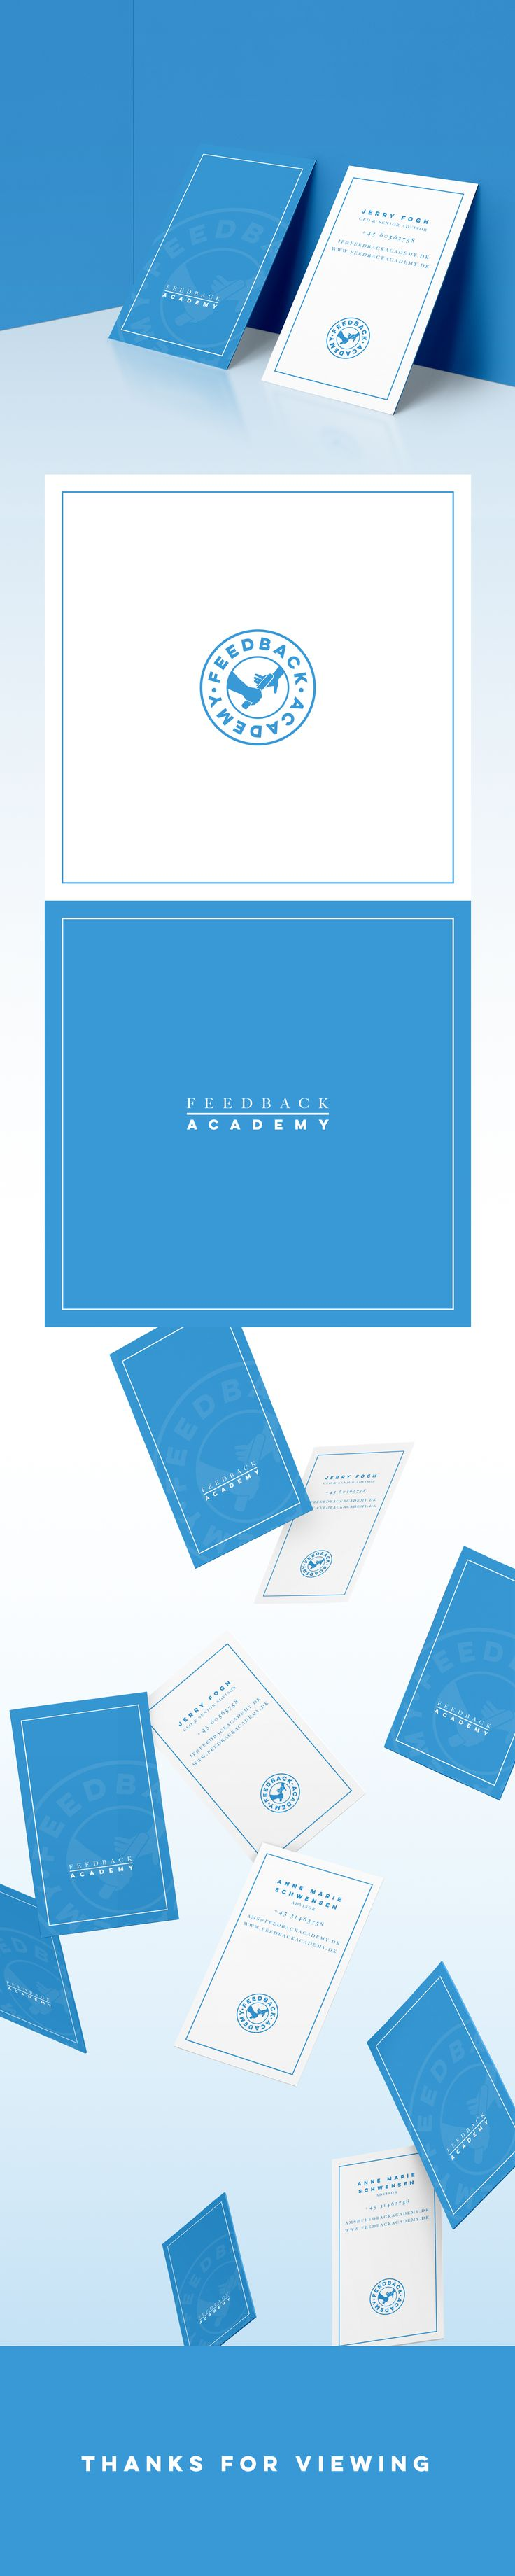 Feedback Academy - Art Direction, Branding. Logo and business card design for Feedback Academy. Logo Design, Visual Identity, Color palette, Business Card Design, Feedback Academy.